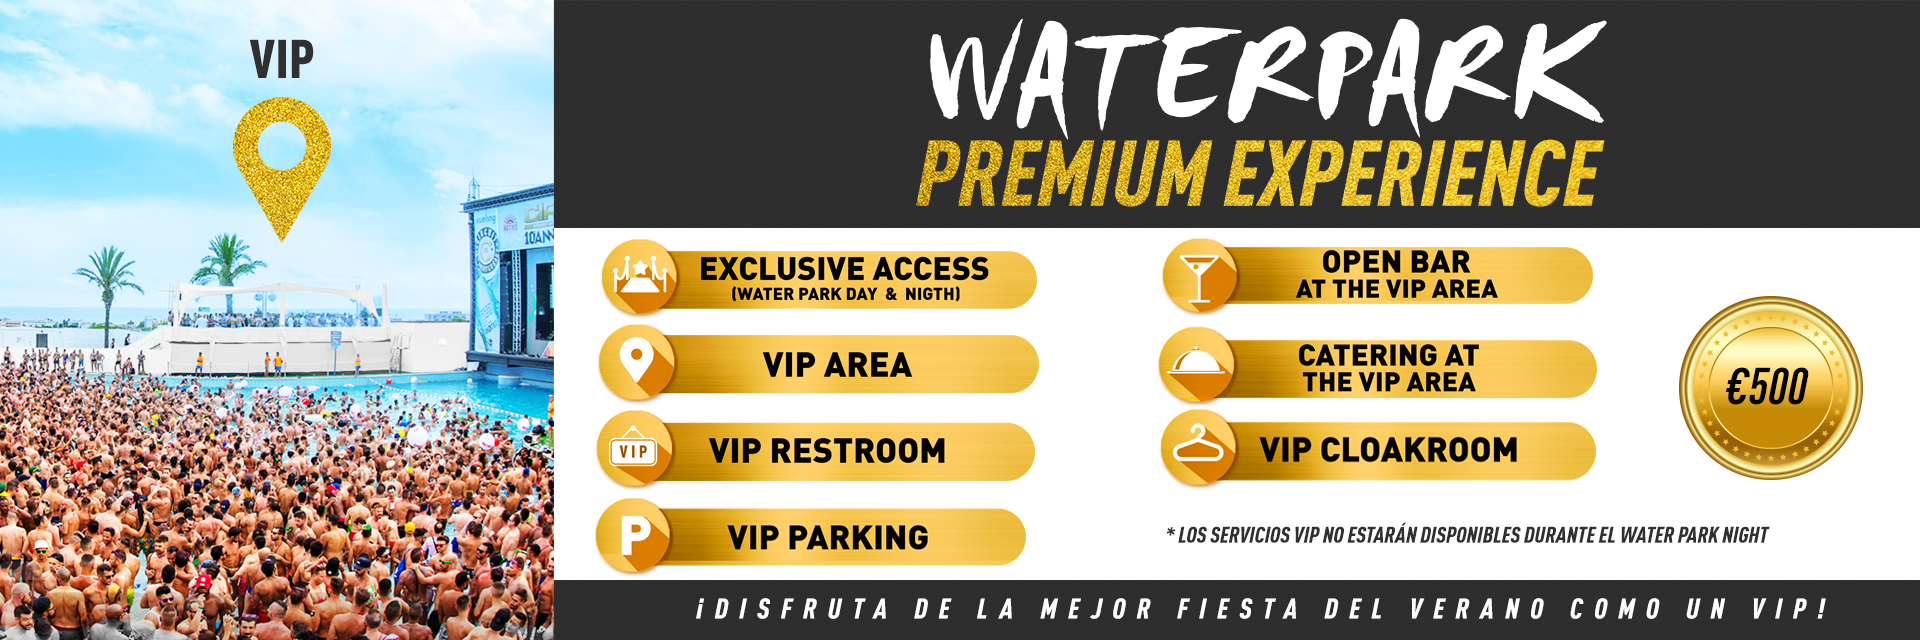 Waterpark-Banner-web-es